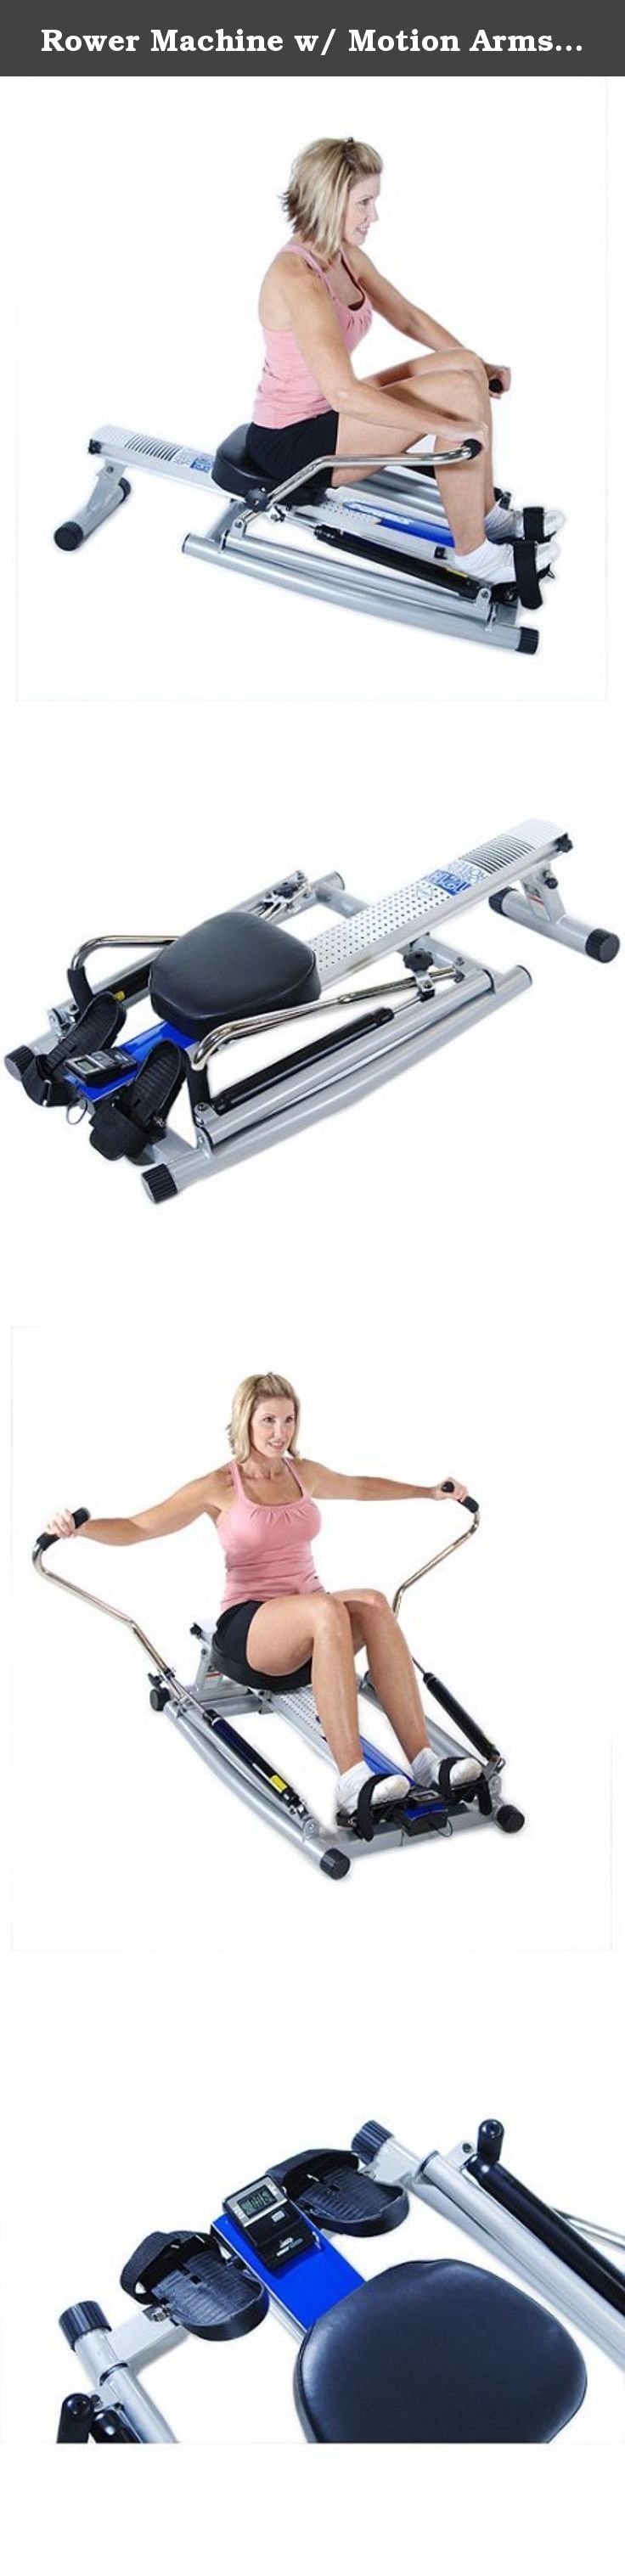 Rower Machine w/ Motion Arms Machine Sports Fitness Exercise Cardio Workout Training Home Gym Rower Machine Aerobic Hydraulic Cylinder Action Resistance Intensity Electronic Fitness Monitor Display. Rowing machine has precision extruded aluminum beam rower machine features deluxe ball bearing roller system Smooth hydraulic cylinder action resistance Adjustable tension controls Increase the beam incline for a more intense workout Rowing arms fold for storage Single button multi-function...